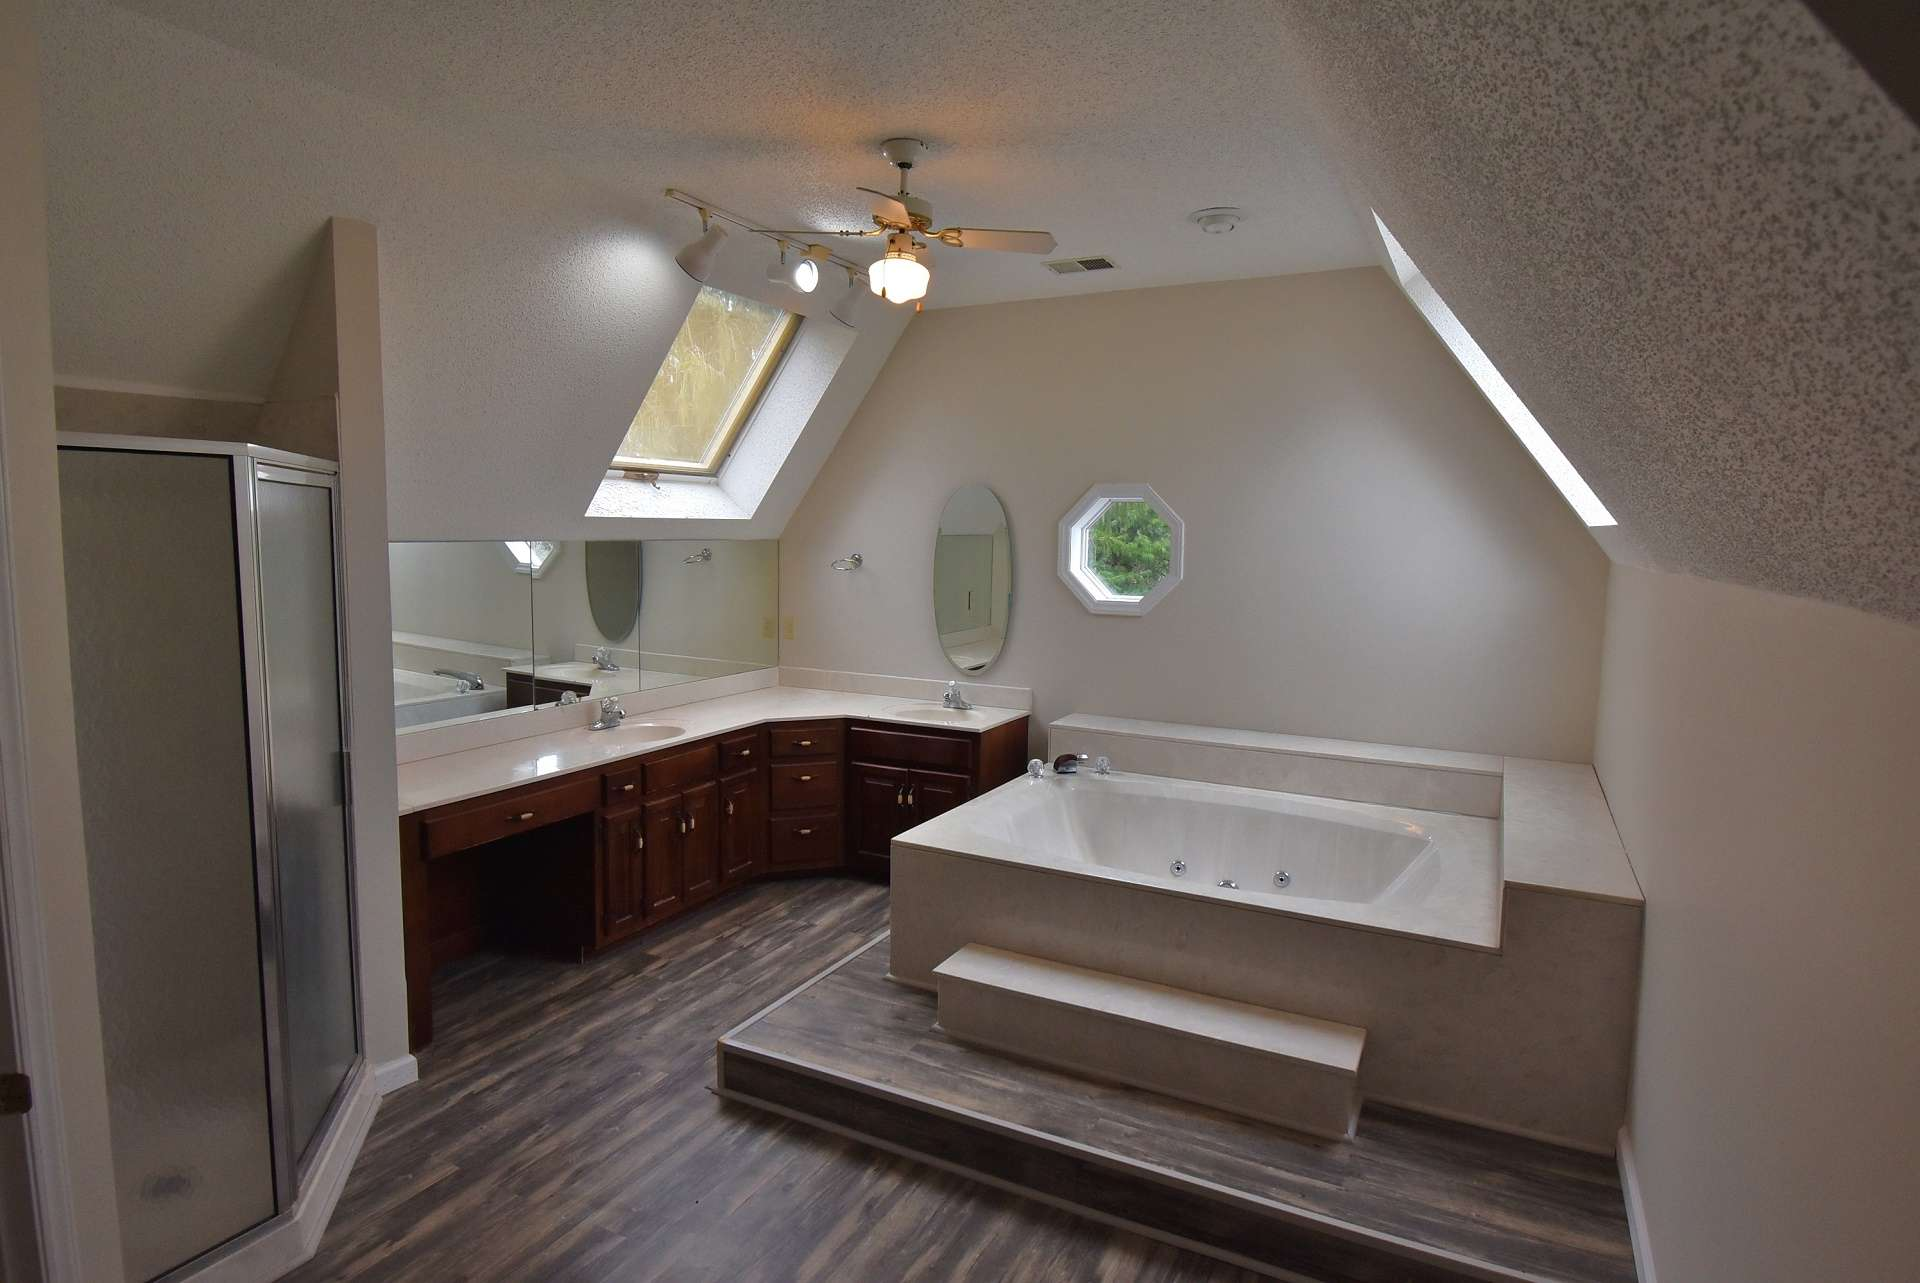 Enjoy a spa-like experience in the master bath with long double vanity, skylights, jetted tub and walk-in shower.